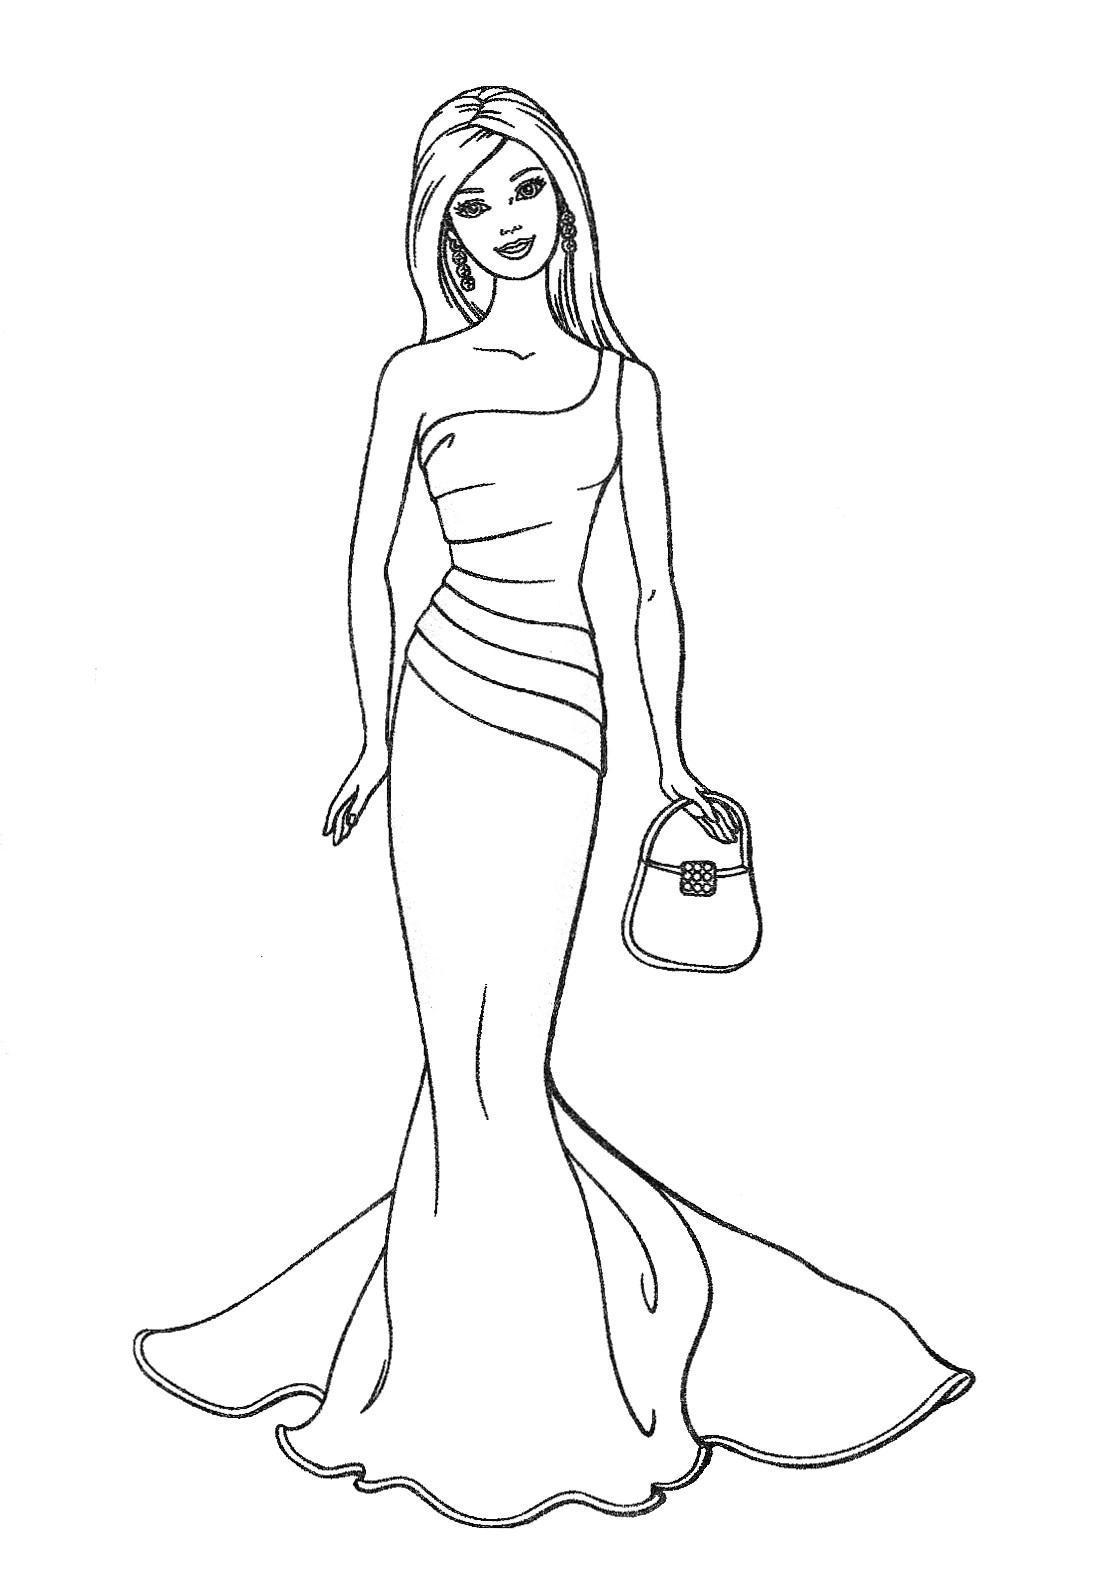 Coloriage de barbie imprimer coloriages barbie - Image de barbie ...